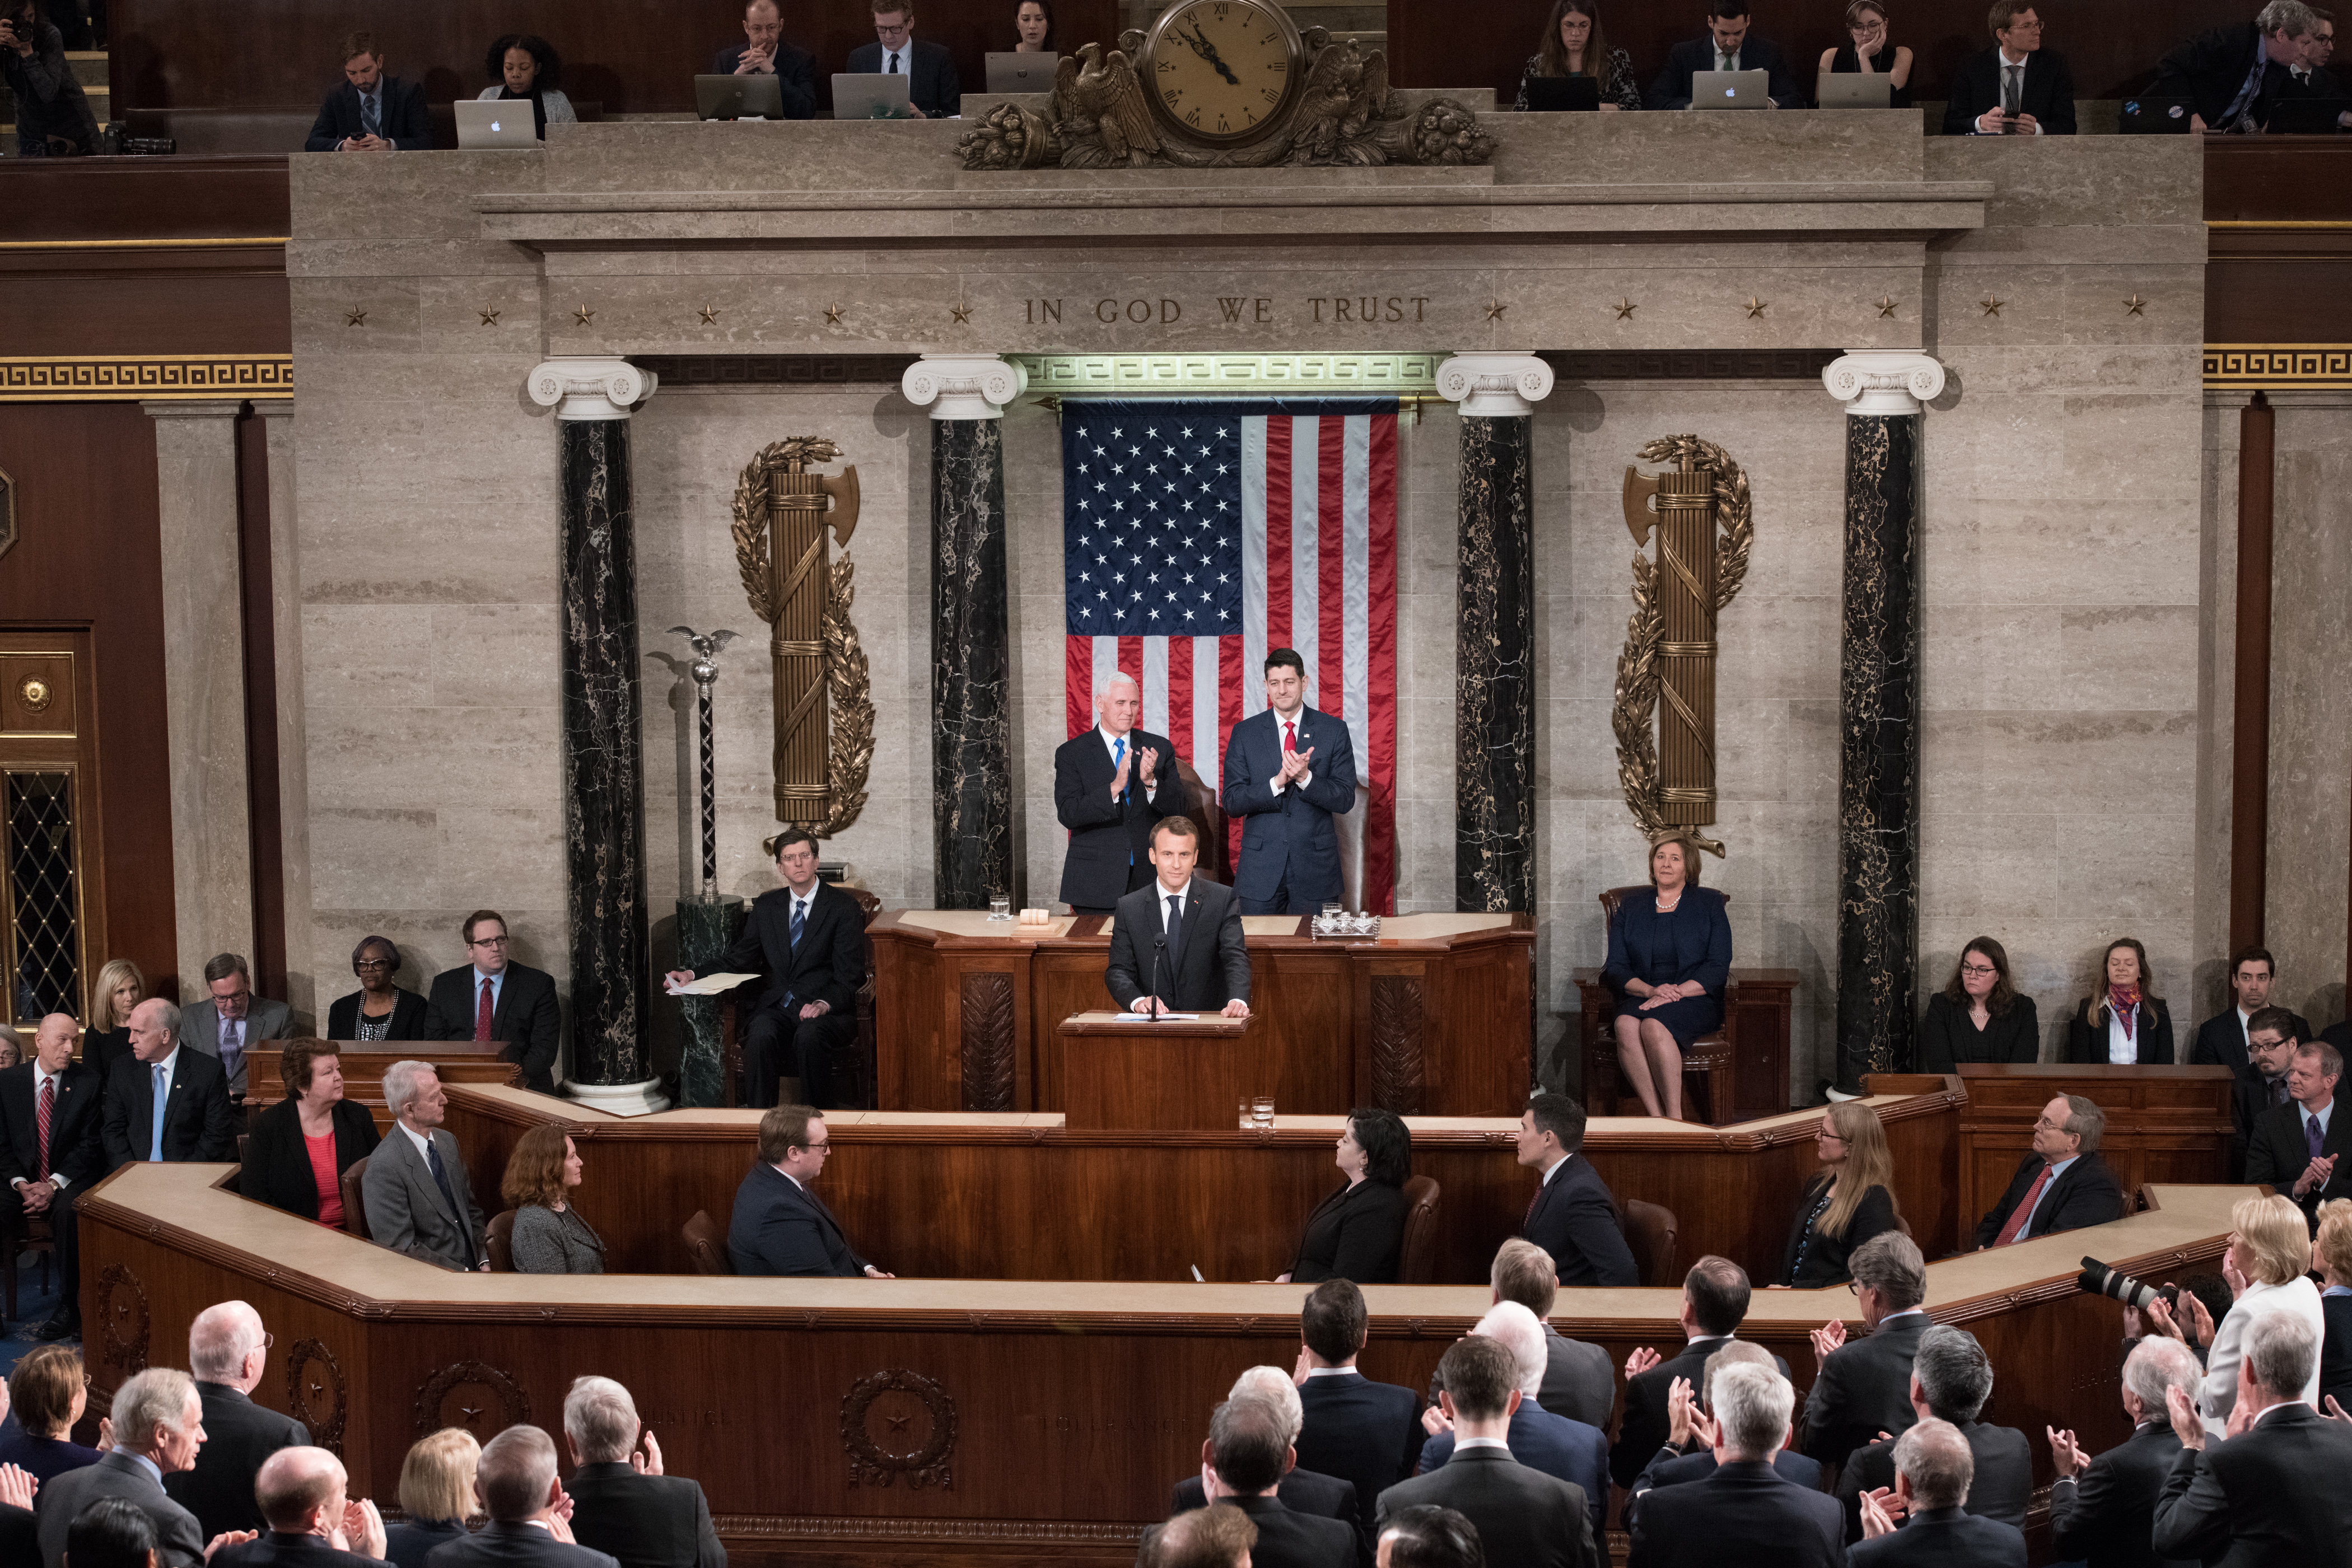 French President Macron at the Speaker's dais on the House Floor